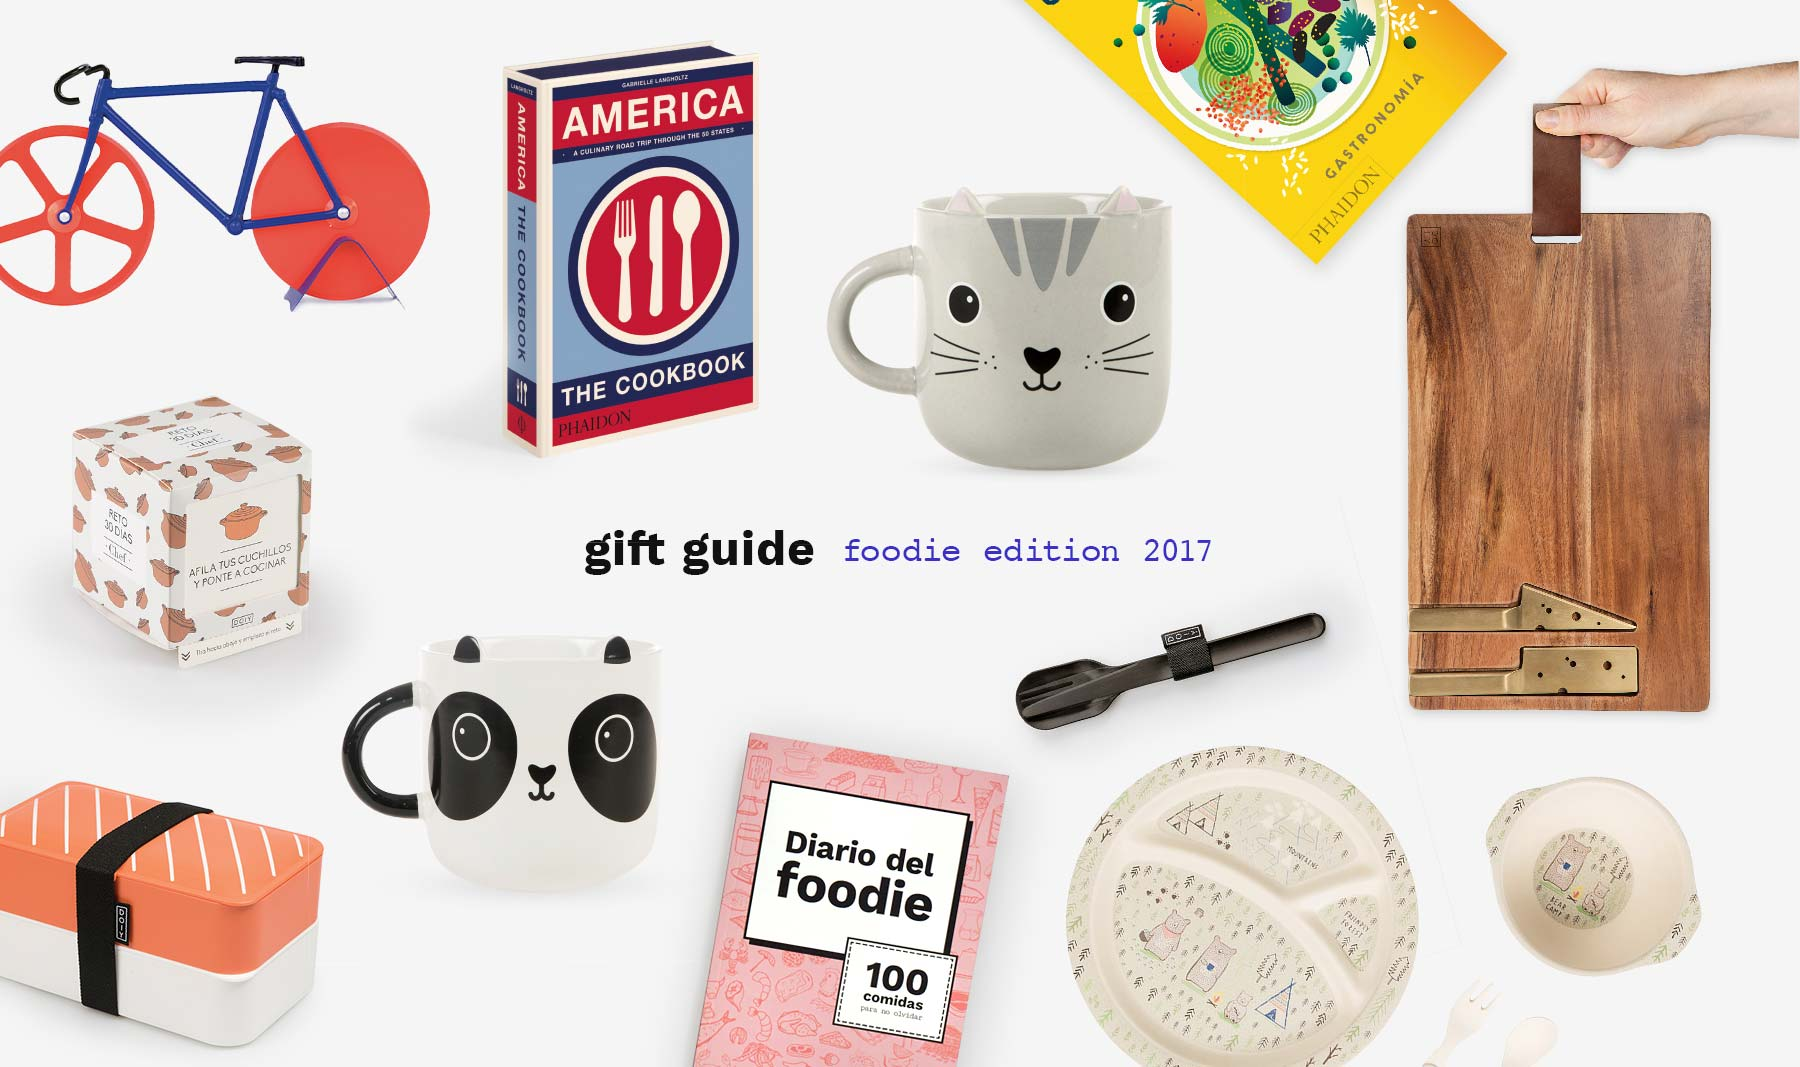 Gift Guide Foodie Edition 2017